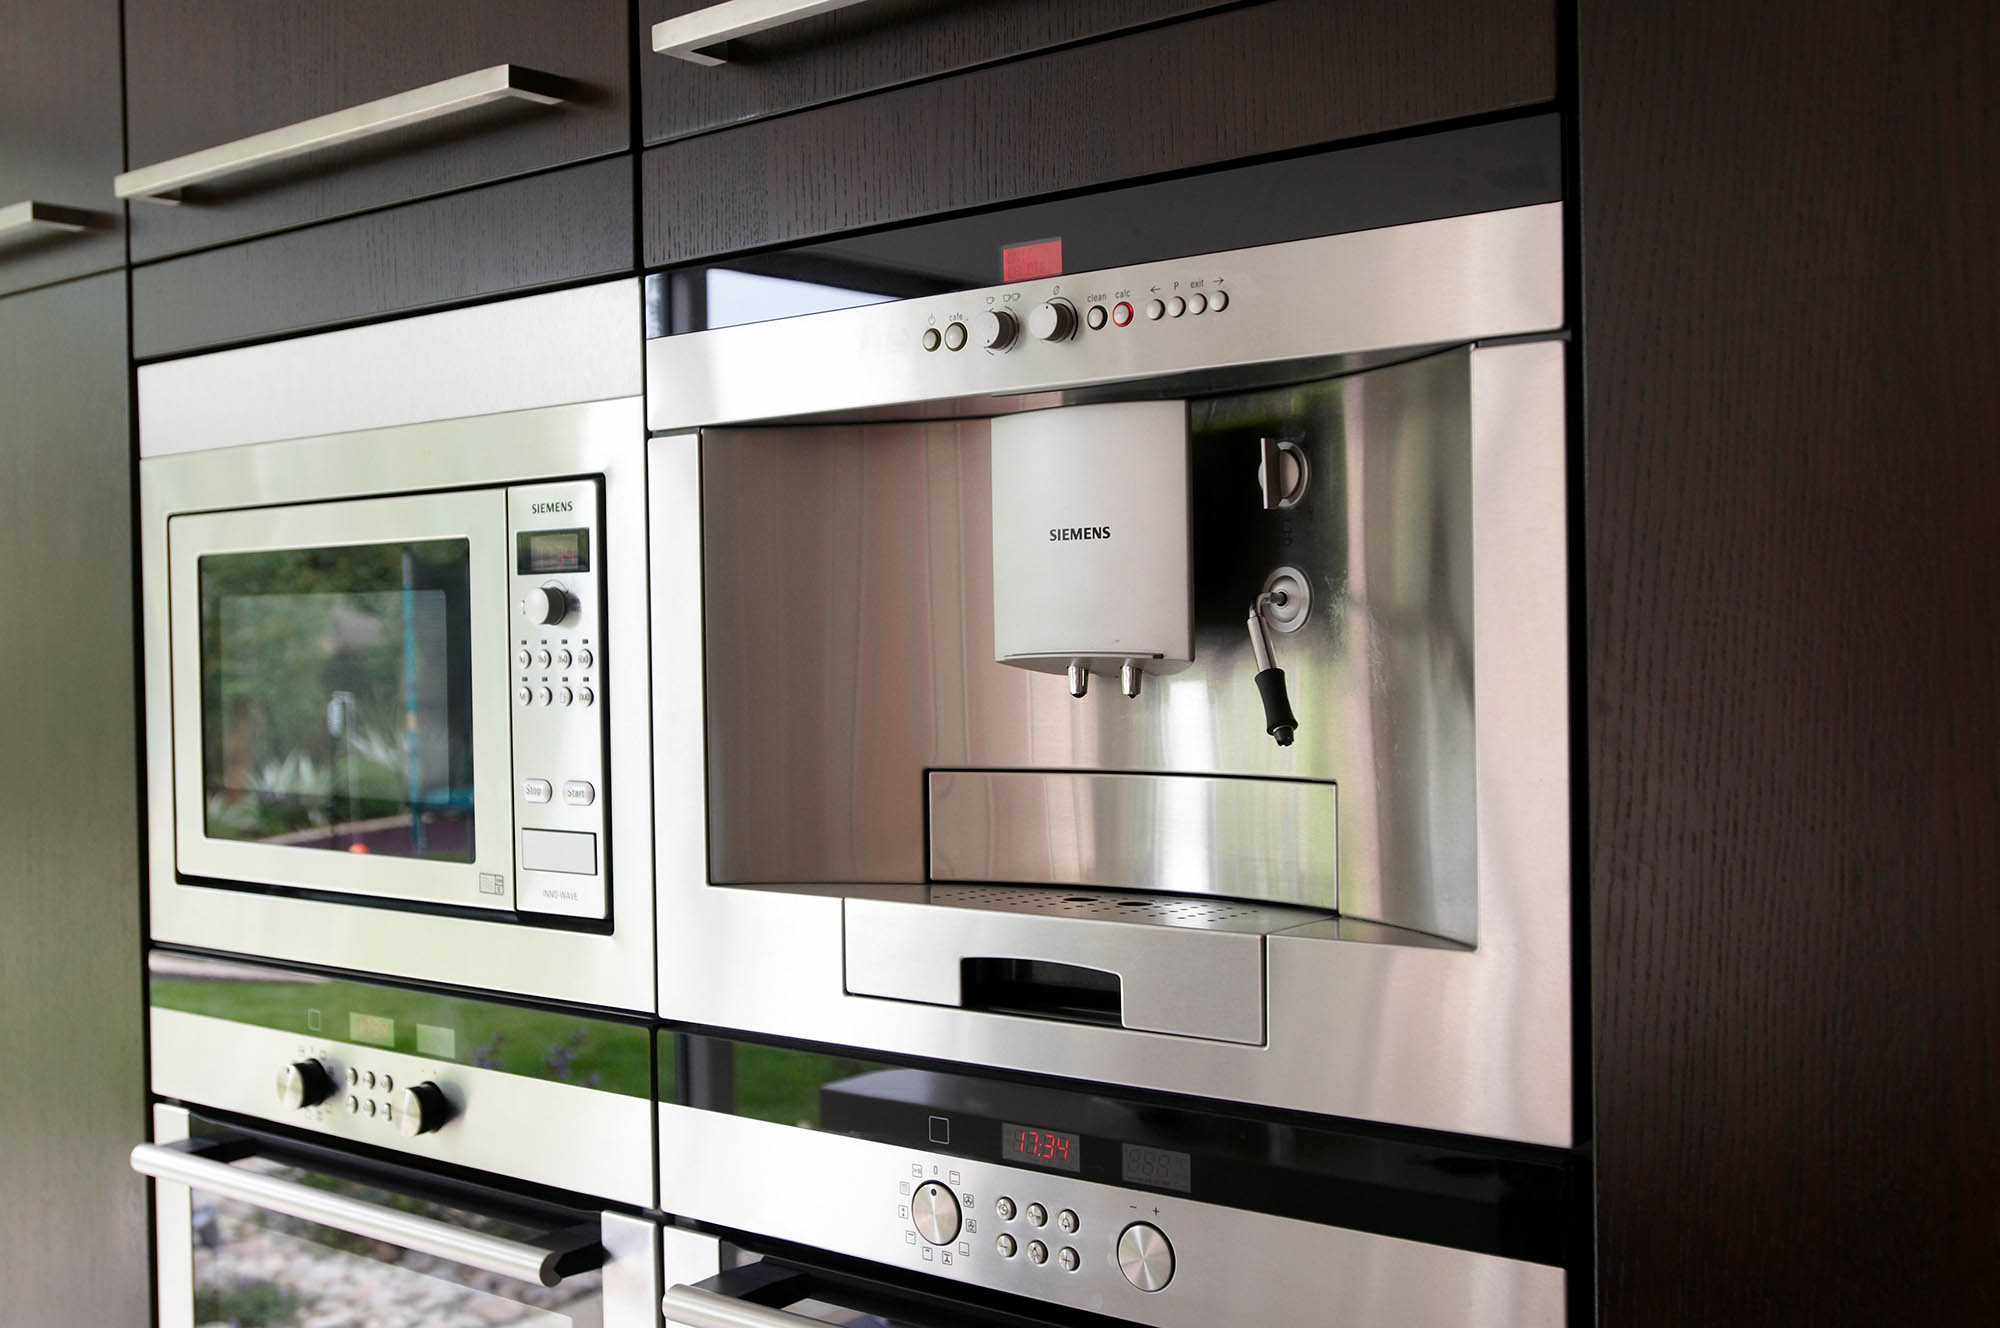 High-spec kitchen appliances for modern Kitchen renovation - wall mounted coffee maker, microwave and double ovens